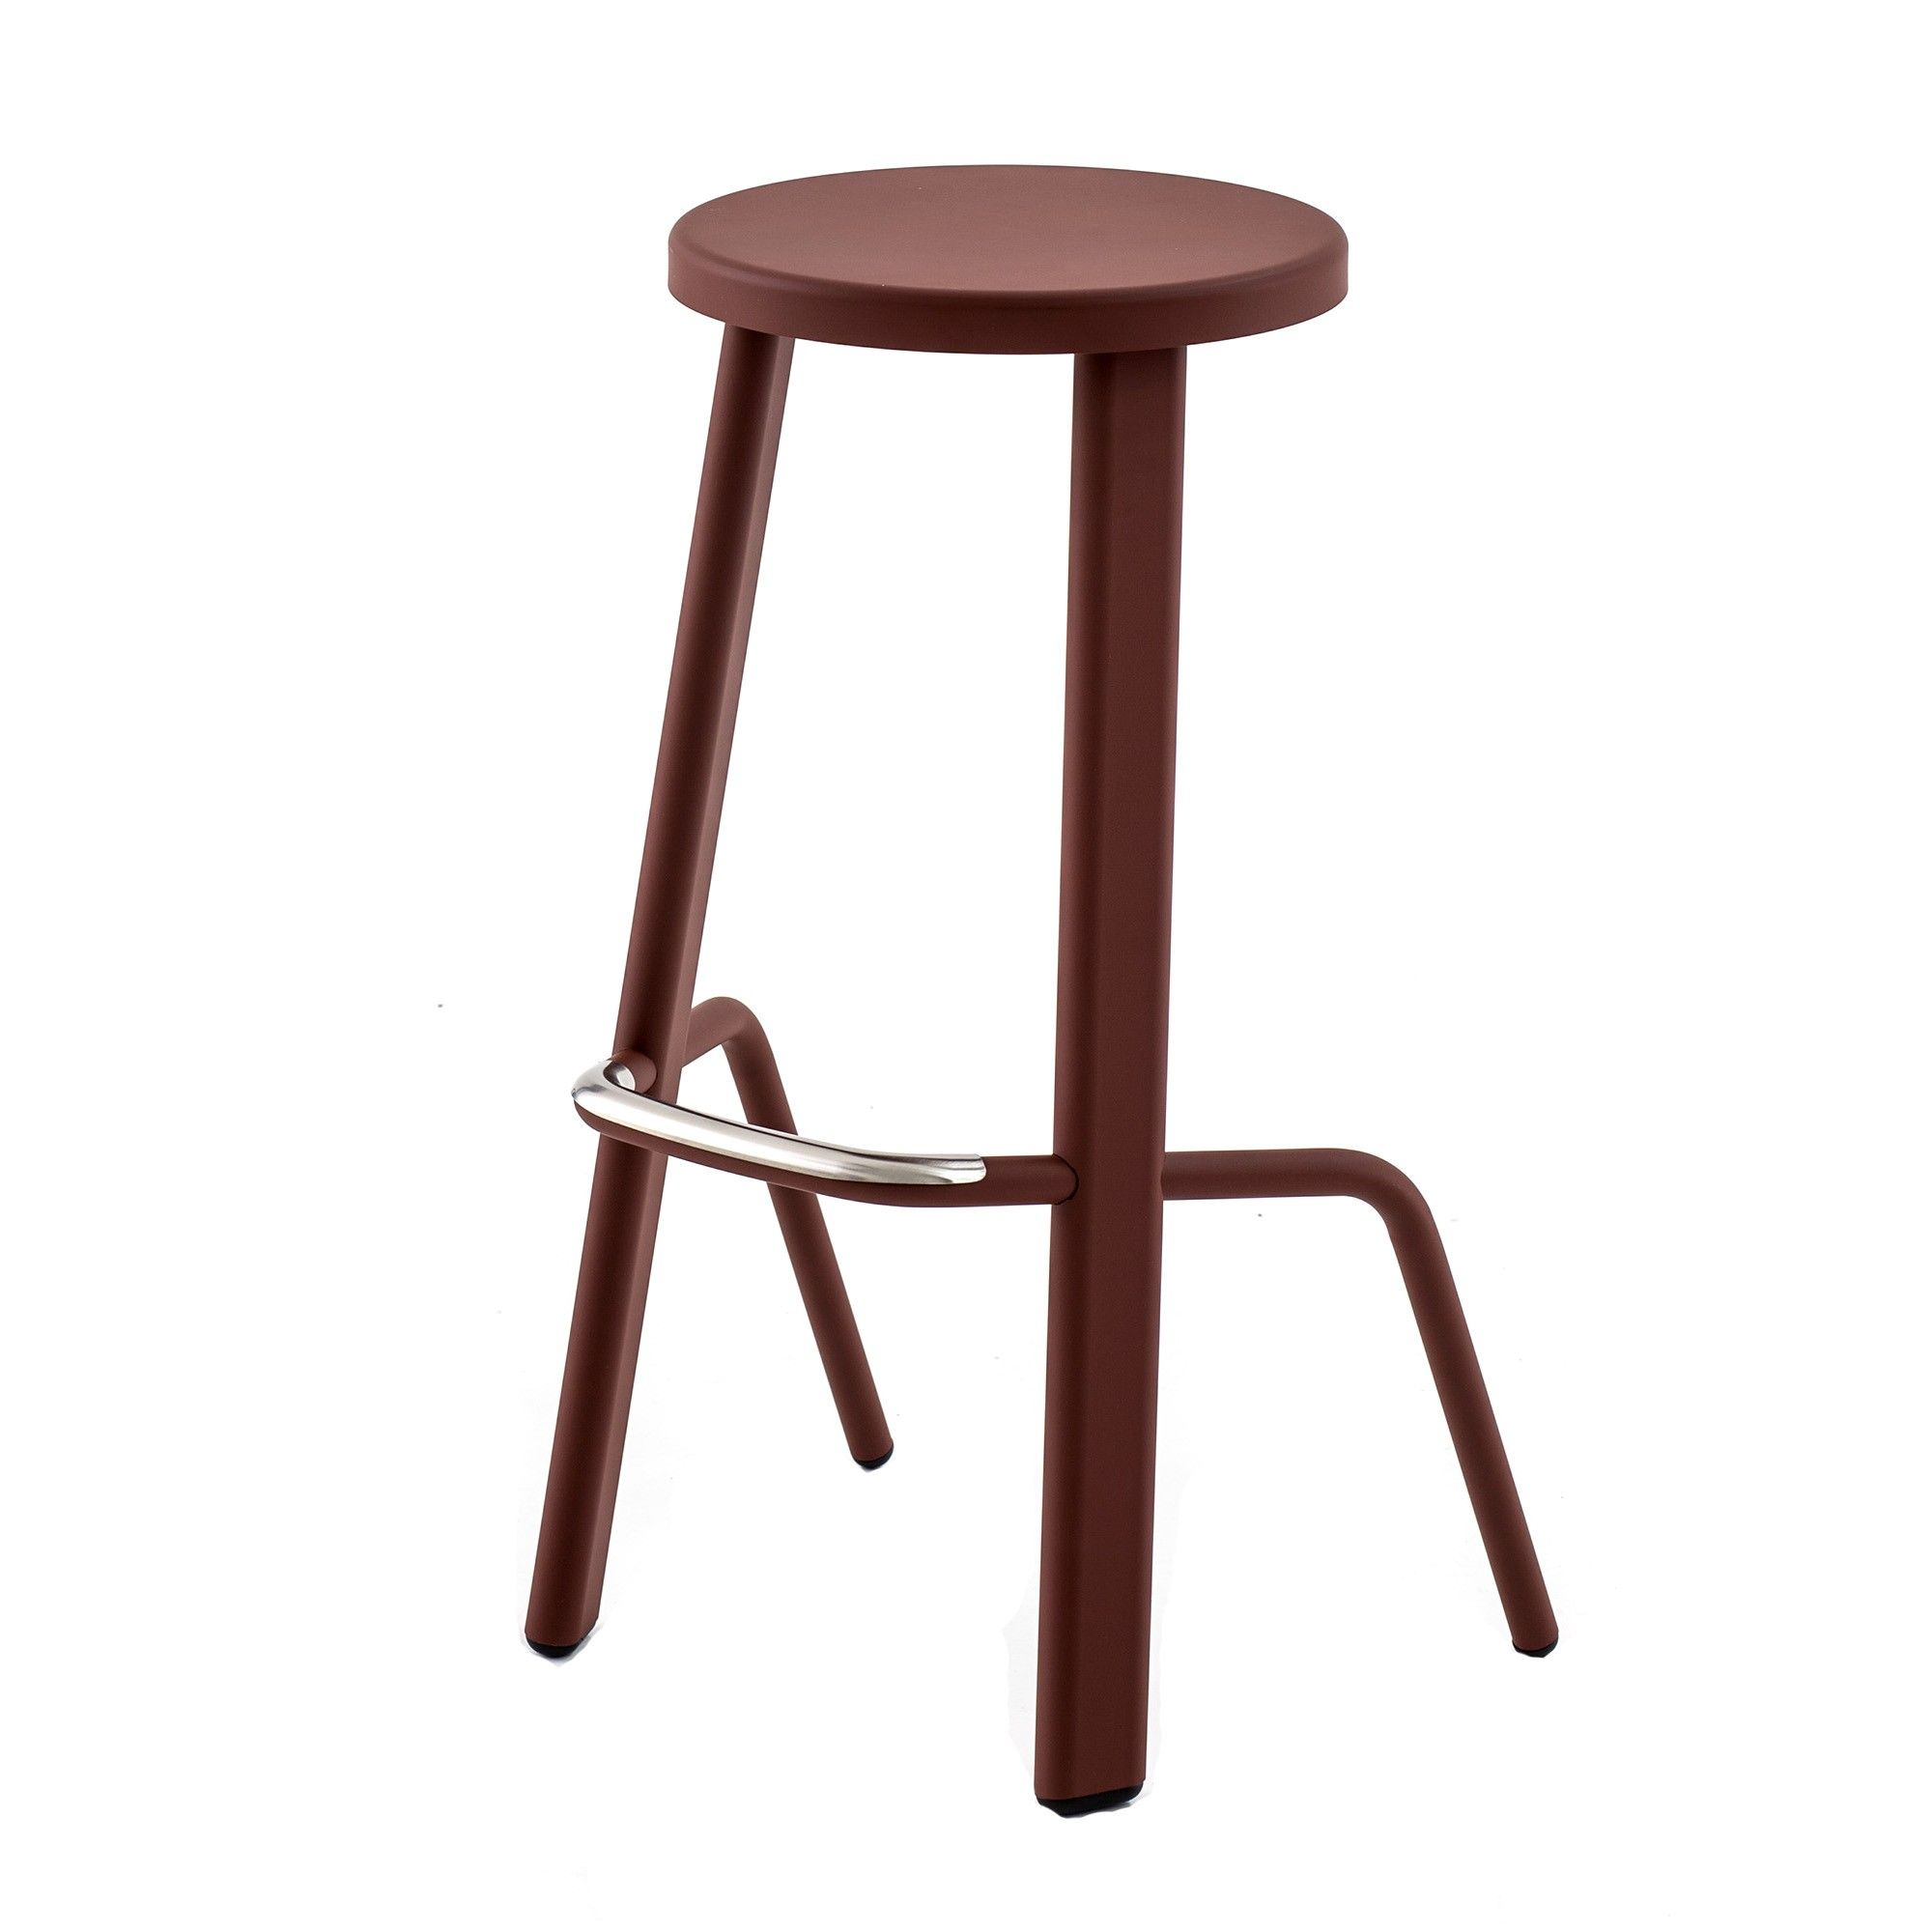 Canape Bulle Tabouret Bull Oxidored Stools Pinterest Tabouret